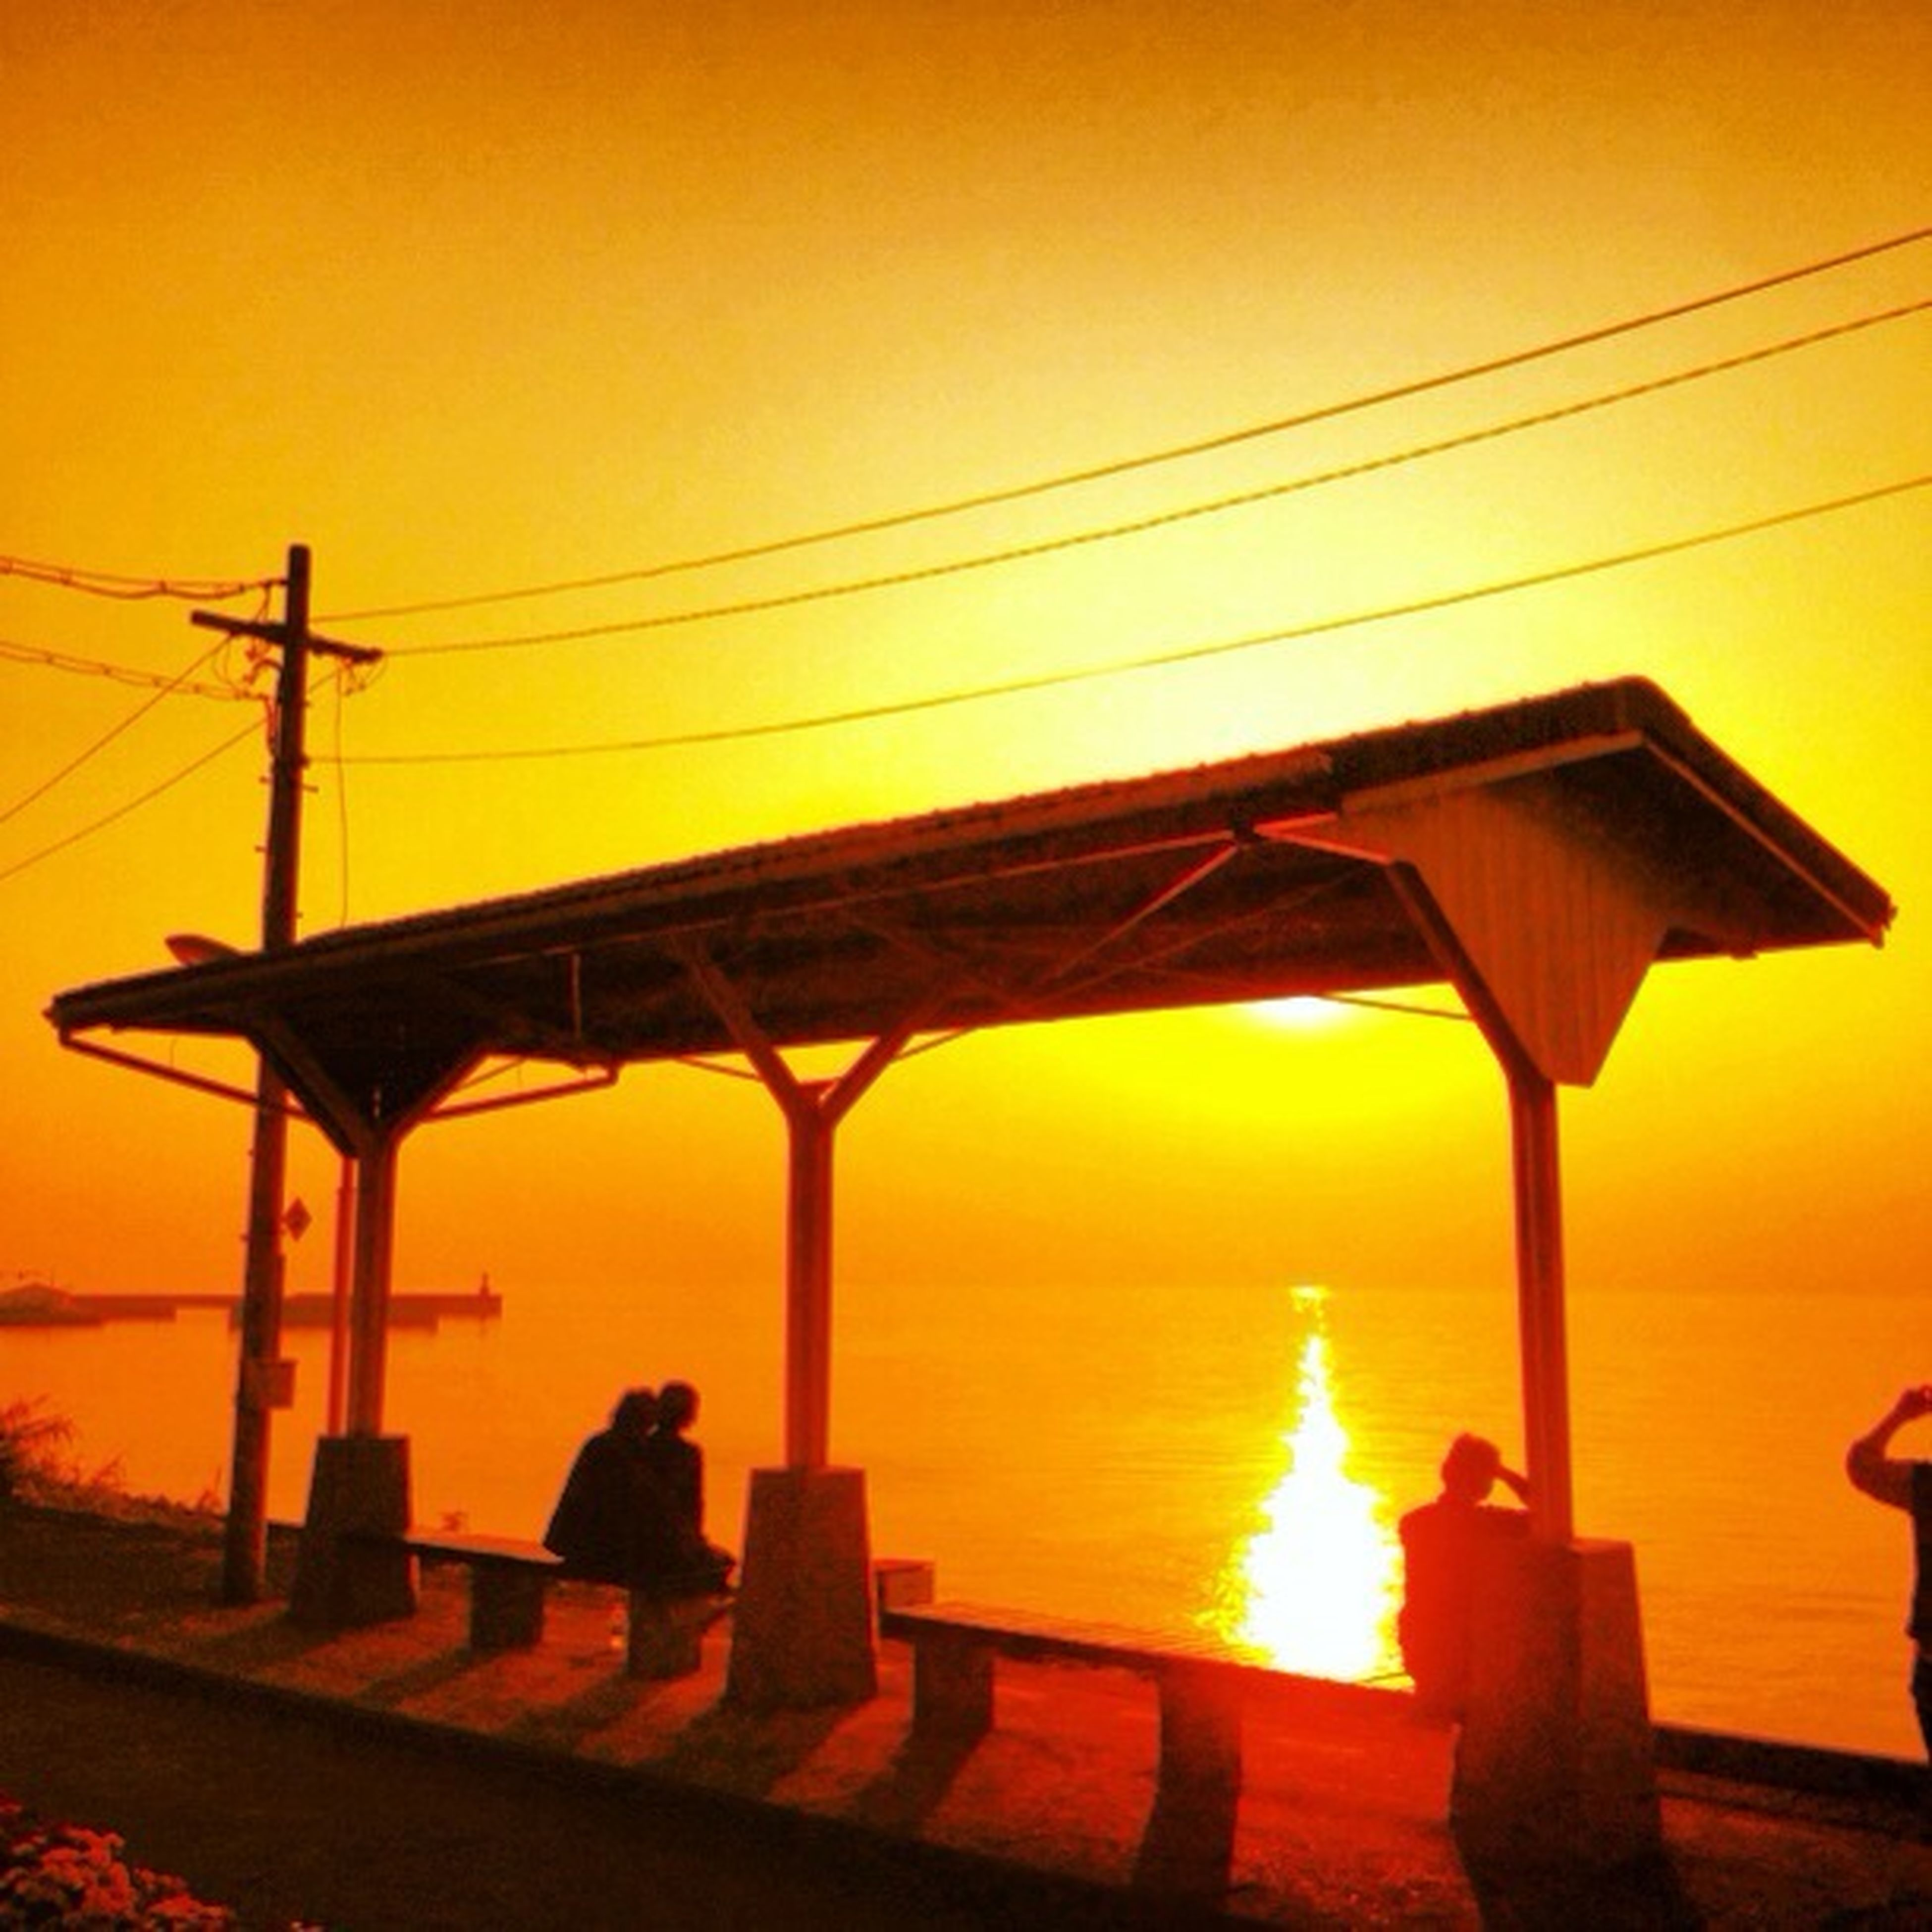 sunset, water, connection, orange color, transportation, built structure, sea, railing, sky, sunlight, street light, nature, sun, power line, no people, yellow, outdoors, electricity, tranquility, beauty in nature